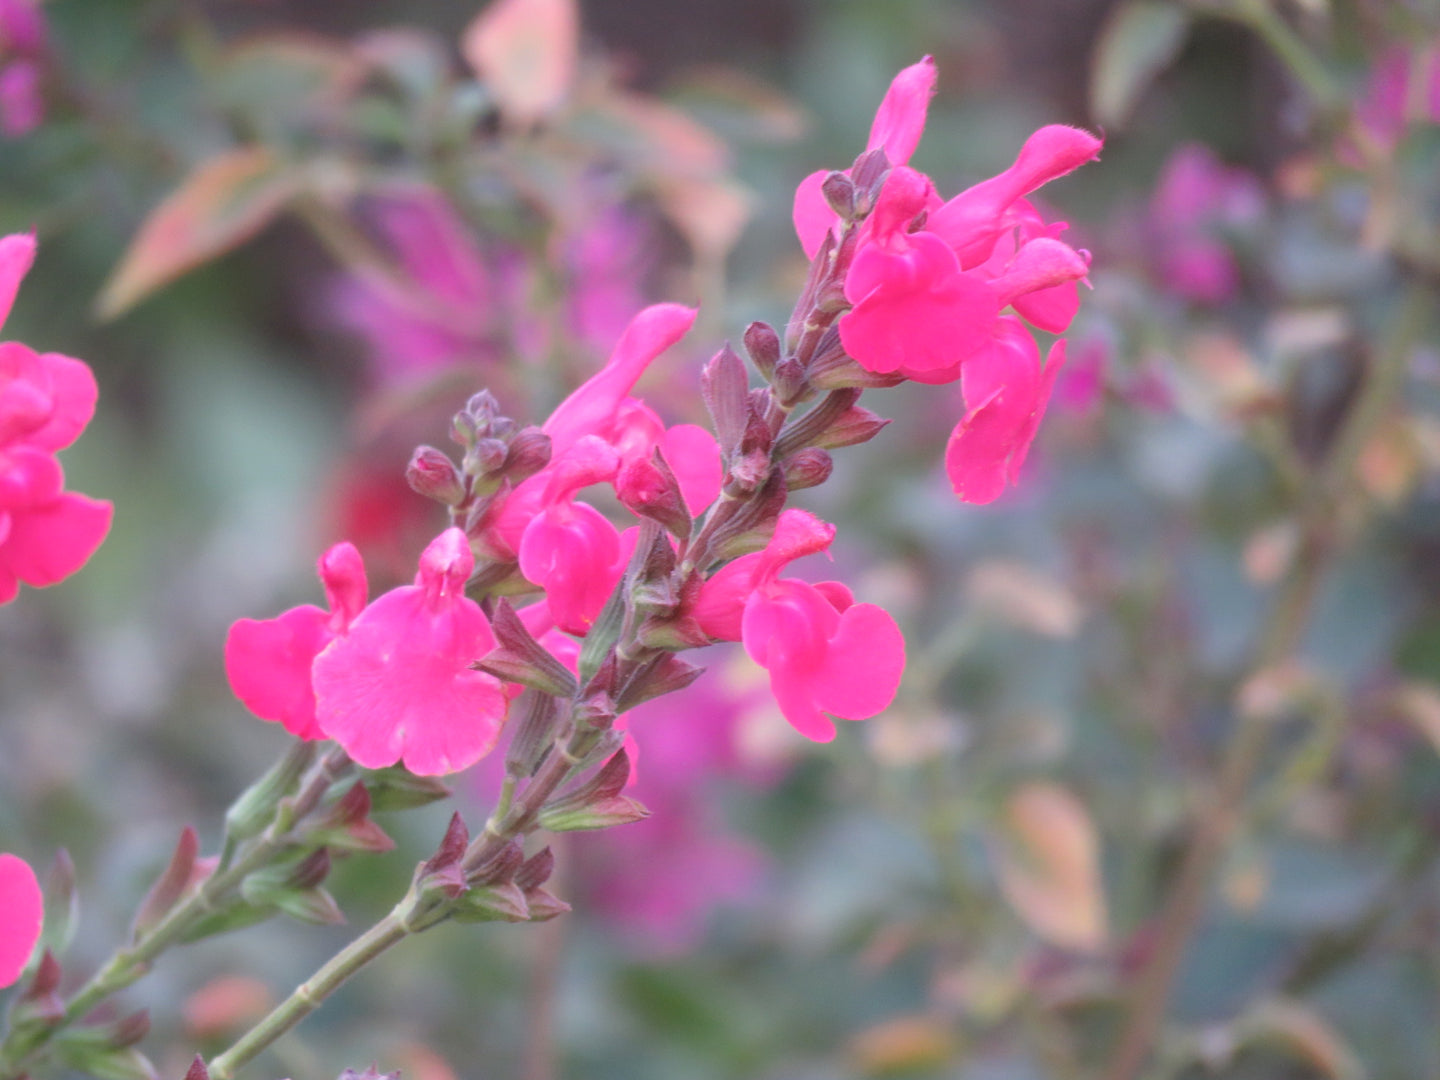 Salvia 'Penny's Smile'